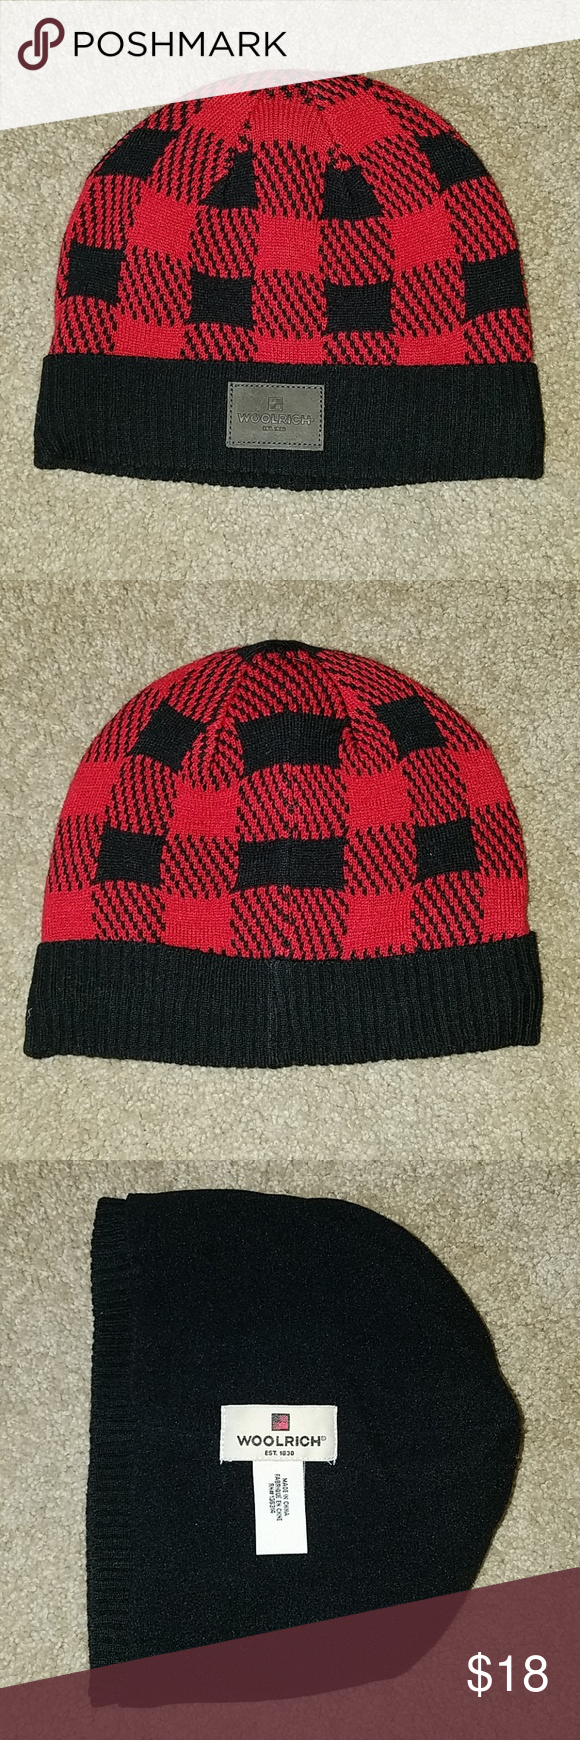 134c64c7acb NEW Woolrich buffalo knit Cuff checkered Beanie Woolrich beanie hat Style    Q16006 Fleece lined Measures approx. 9.5